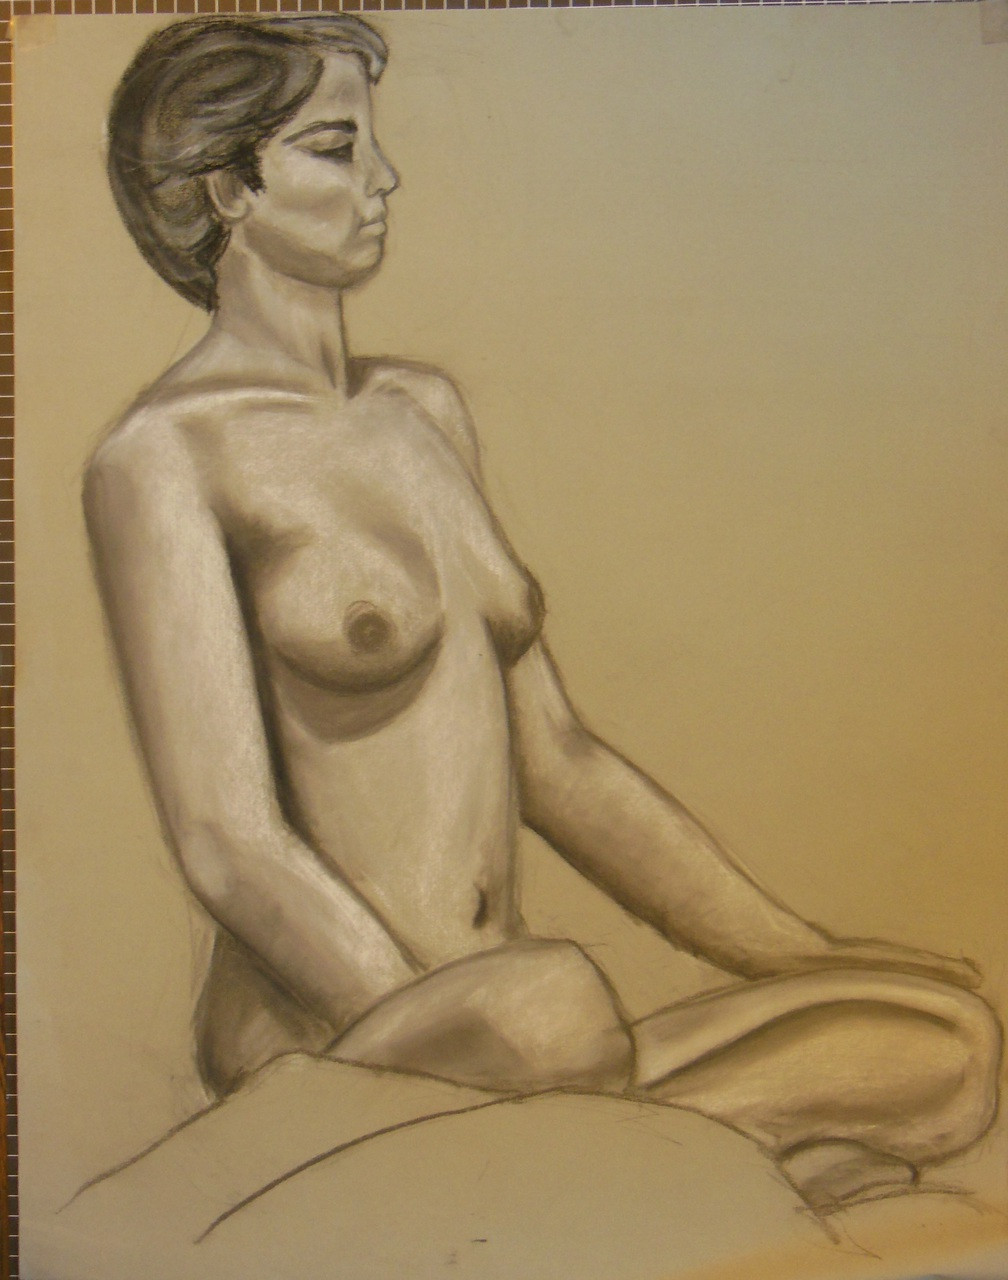 Nude Drawing: Charcoal & pastel on grey paper. 13